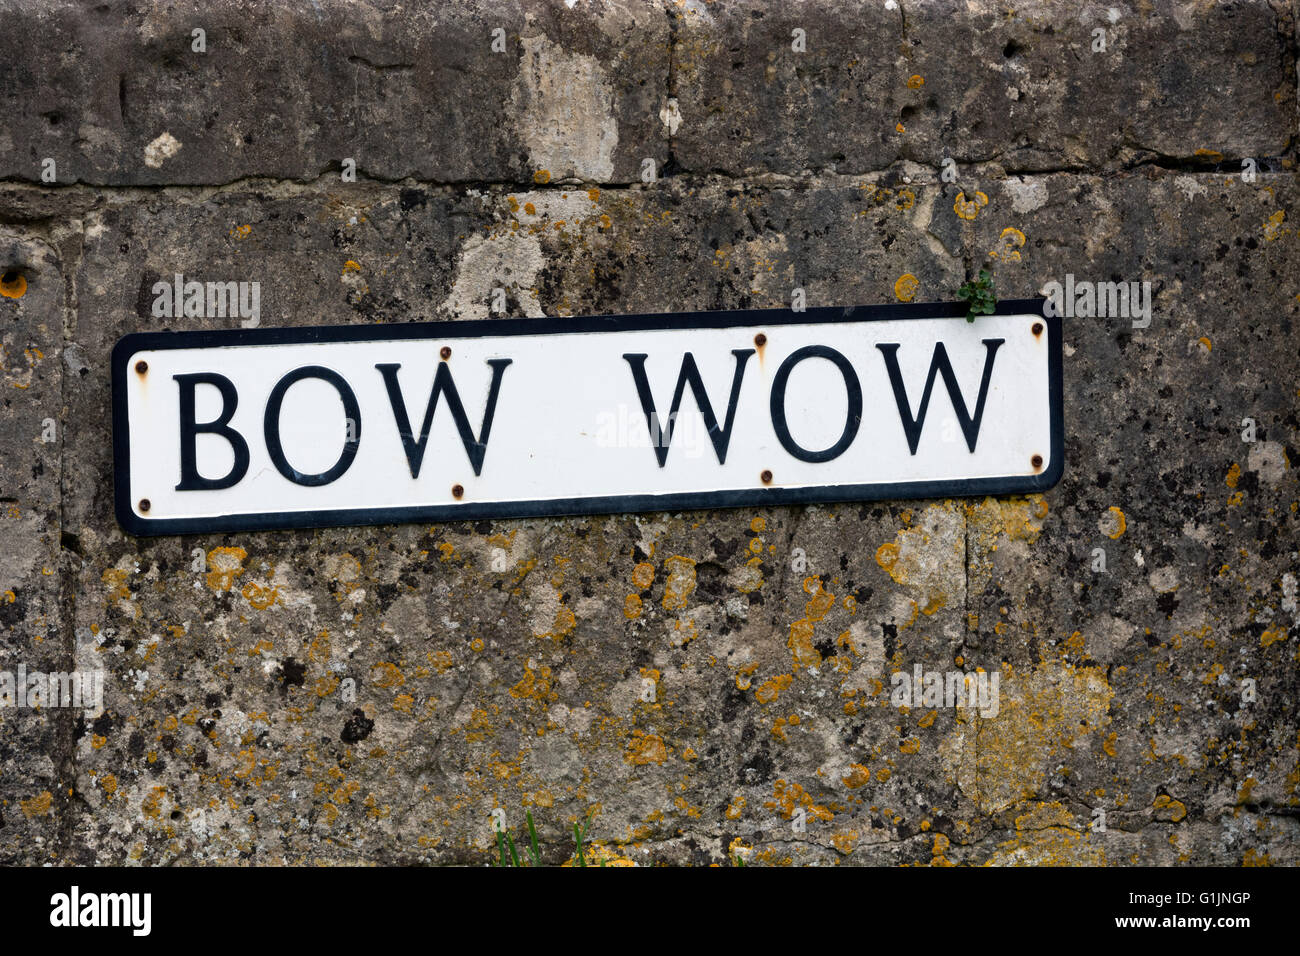 Bow Wow street sign, South Cerney village, Gloucestershire, England, UK - Stock Image